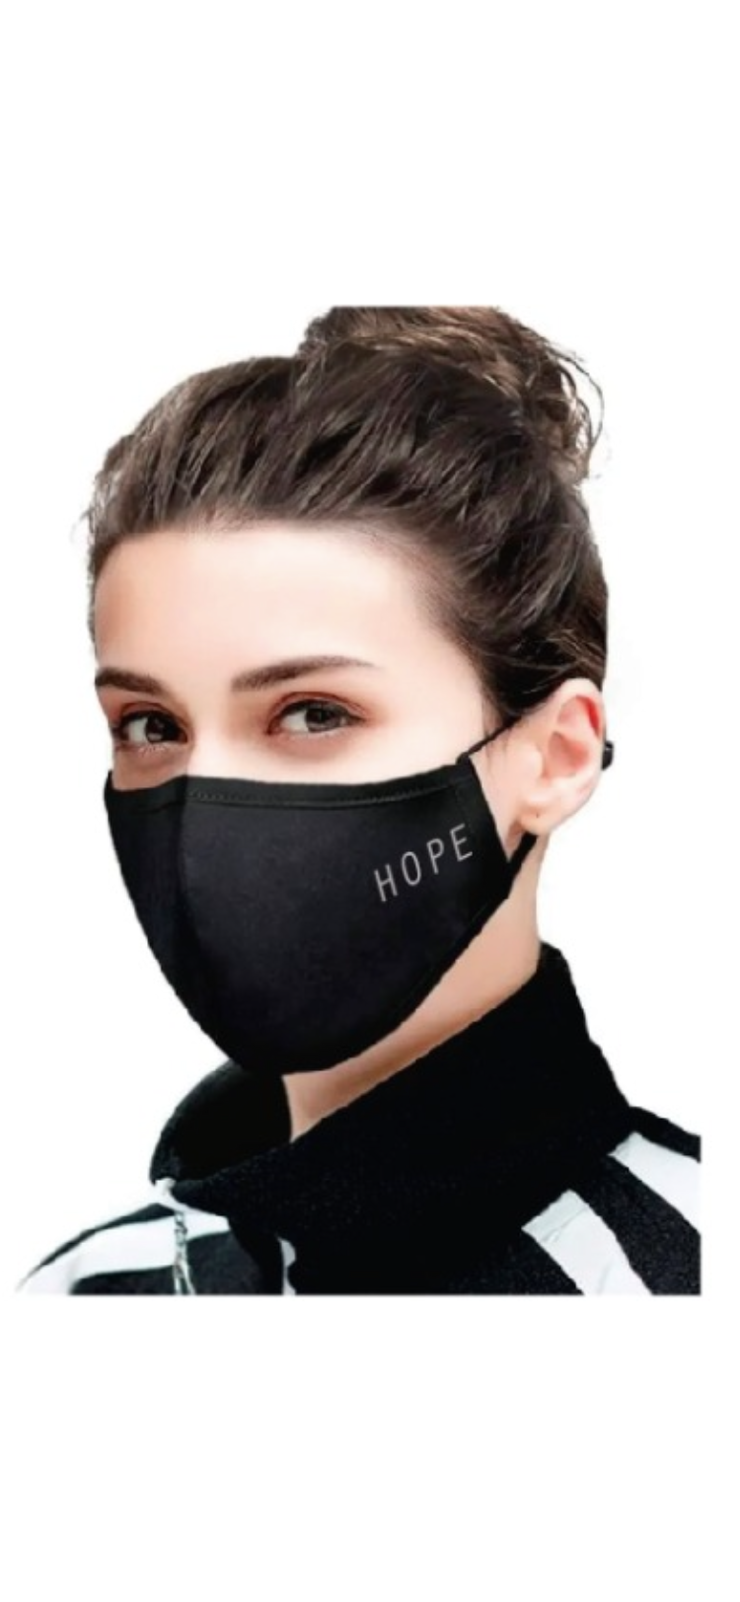 Hope Face Mask